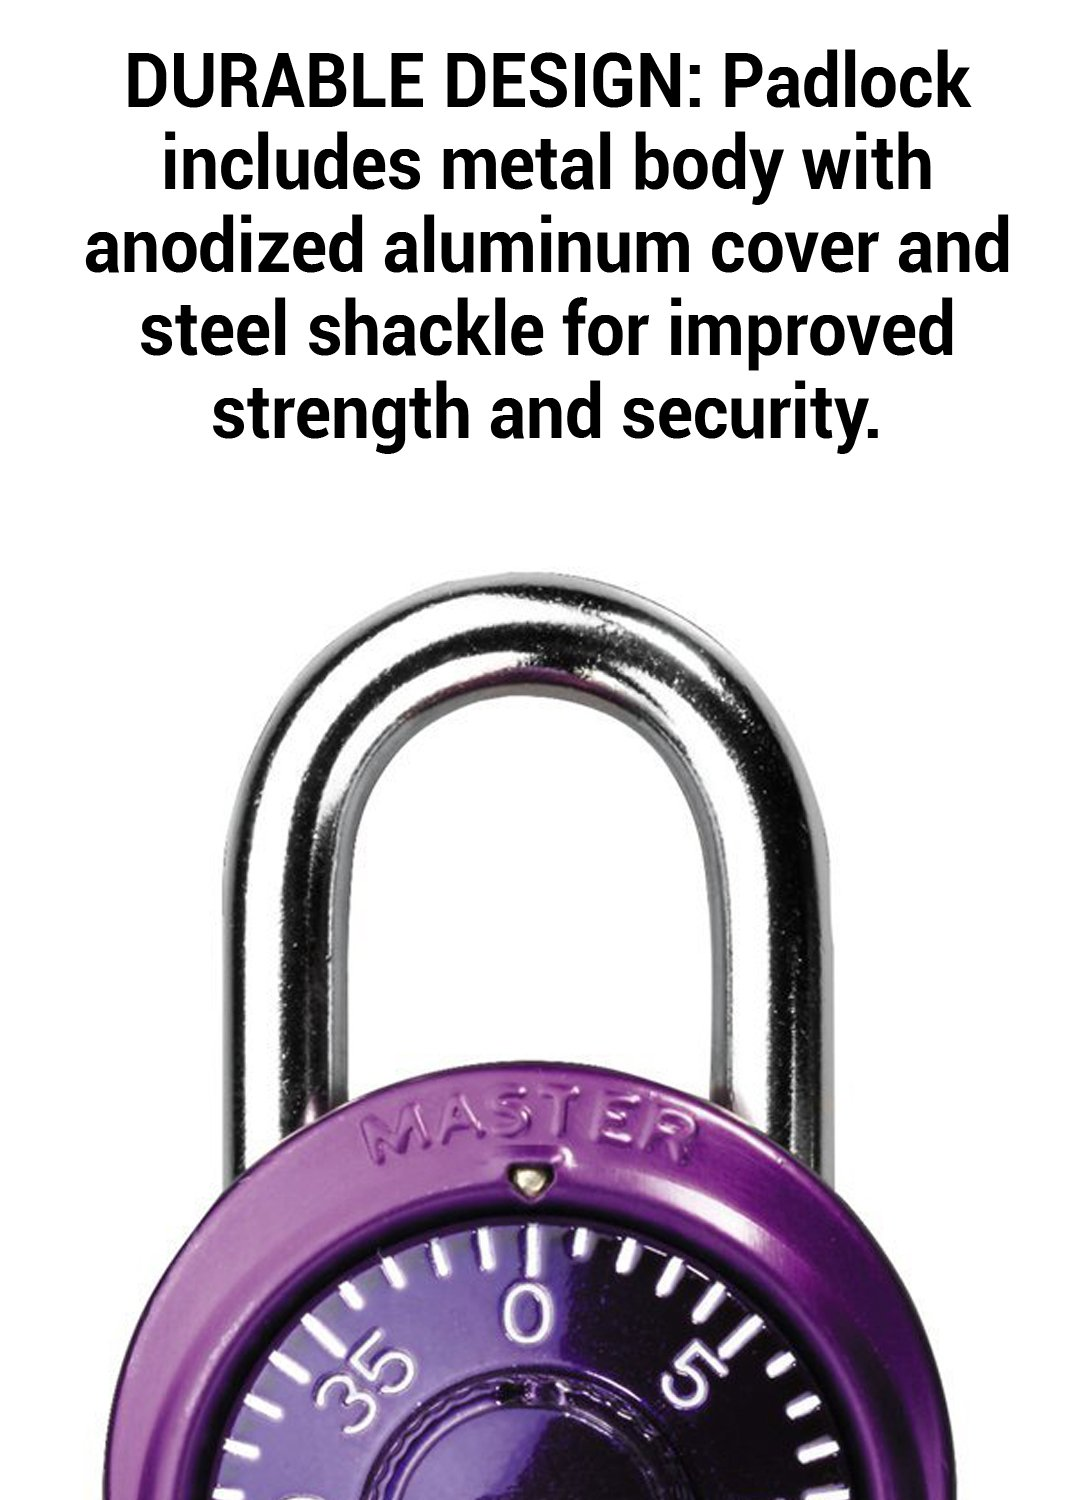 Master Lock Padlock, Standard Dial Combination Lock, 1-7/8 in. Wide, Assorted Colors, 1530T (Pack of 2)